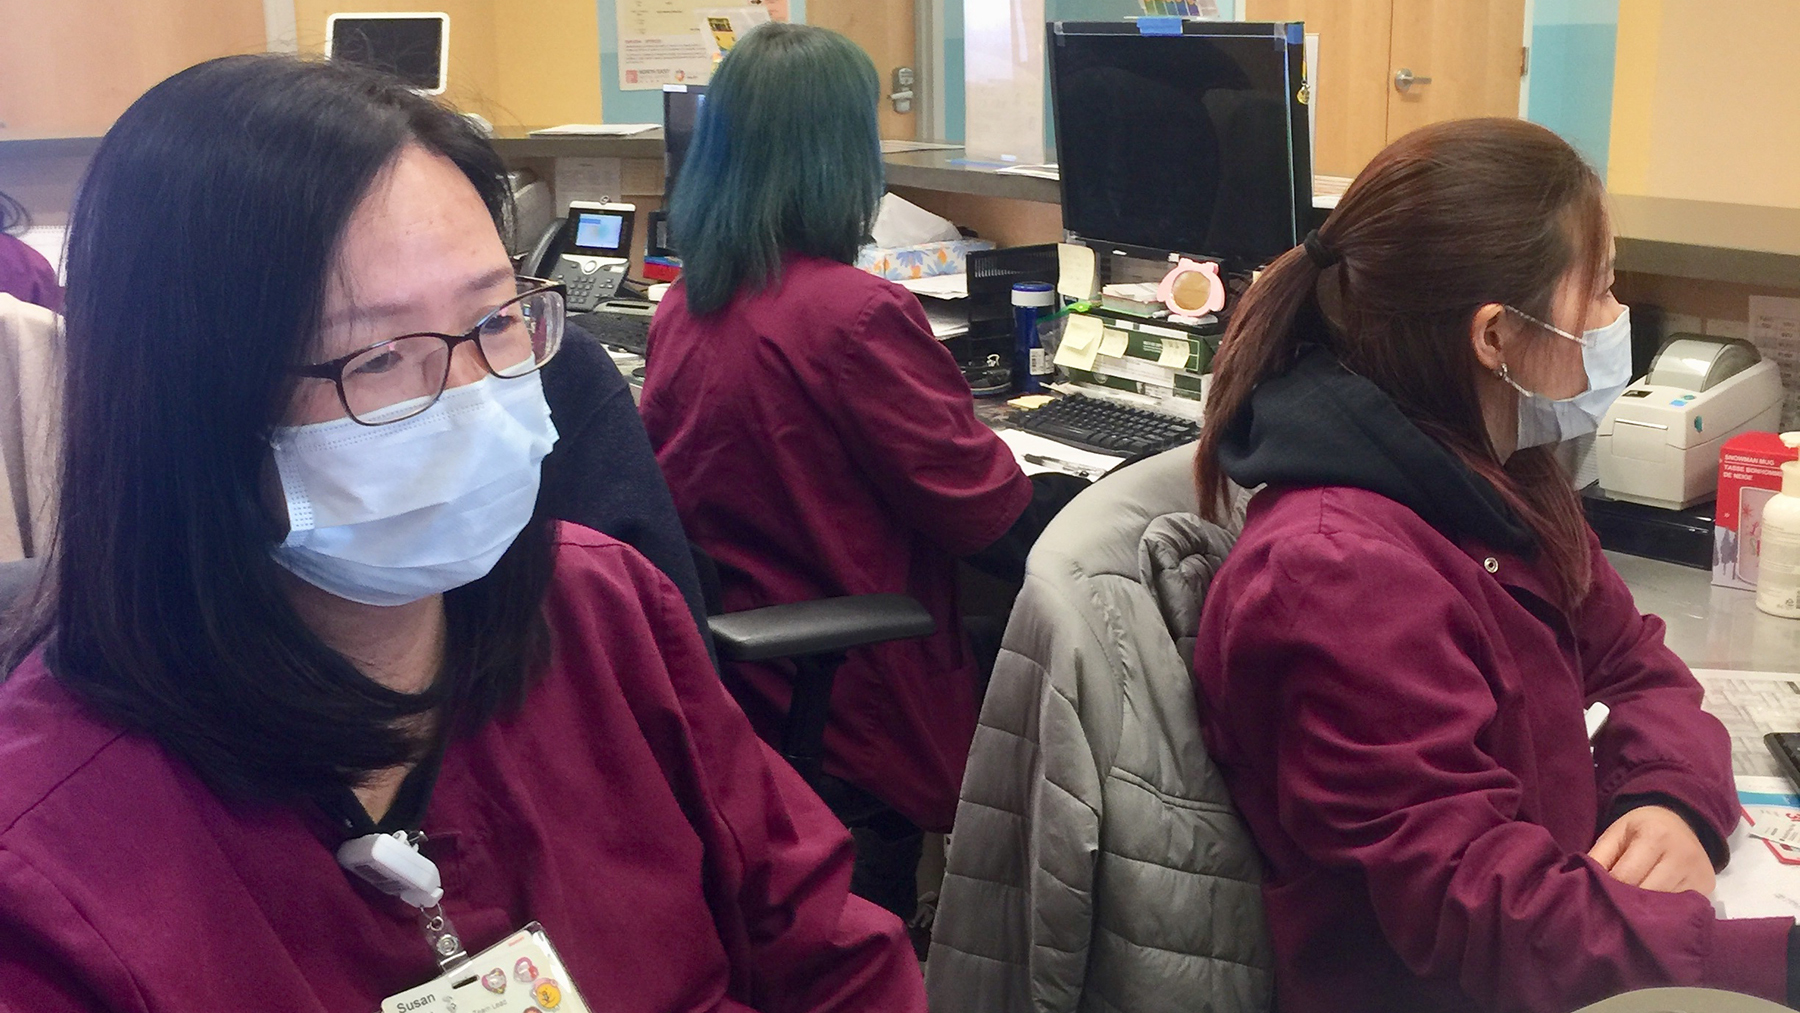 Front desk staff at North East Medical Services in the Bay Area wear masks as a protective measure during the coronavirus outbreak. (Photo courtesy of Dr. Kenneth Tai)